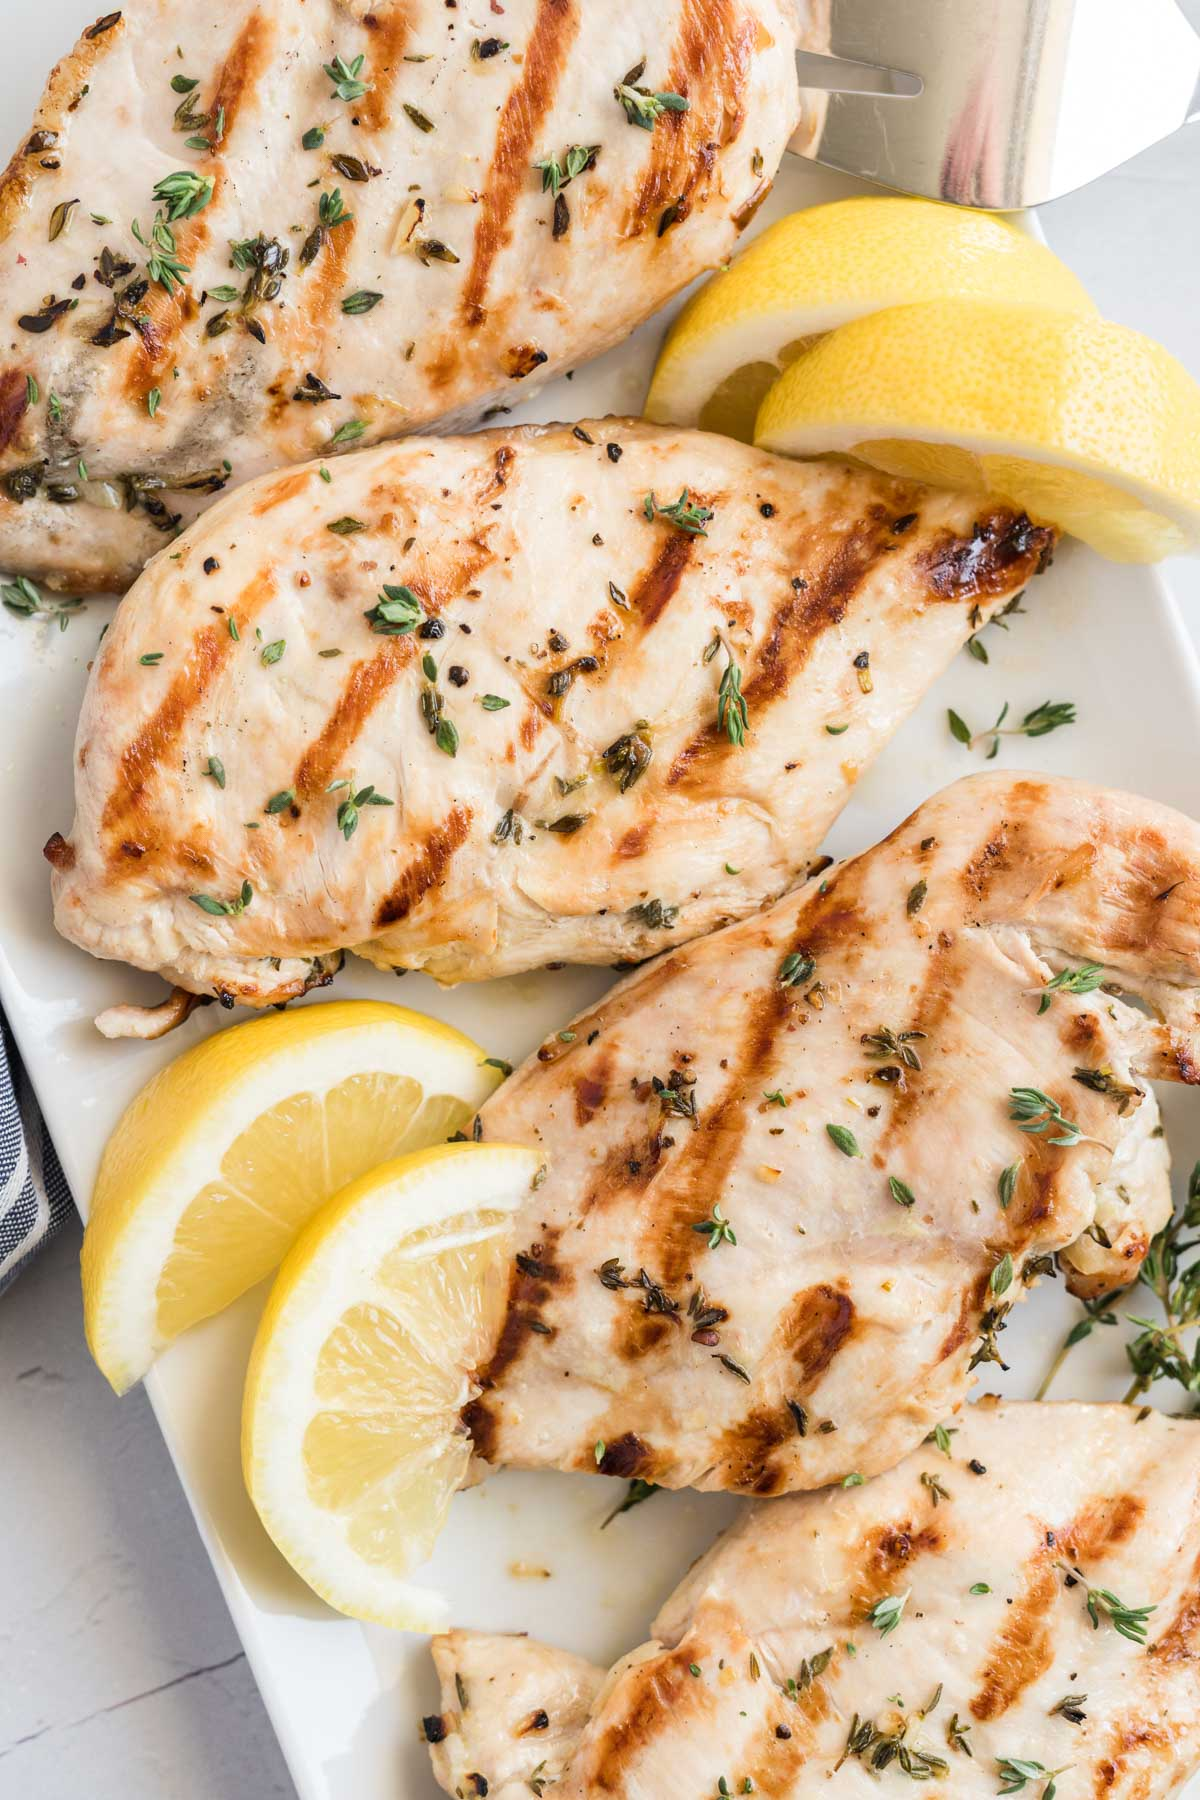 Grilled chicken on a platter with lemon wedges.